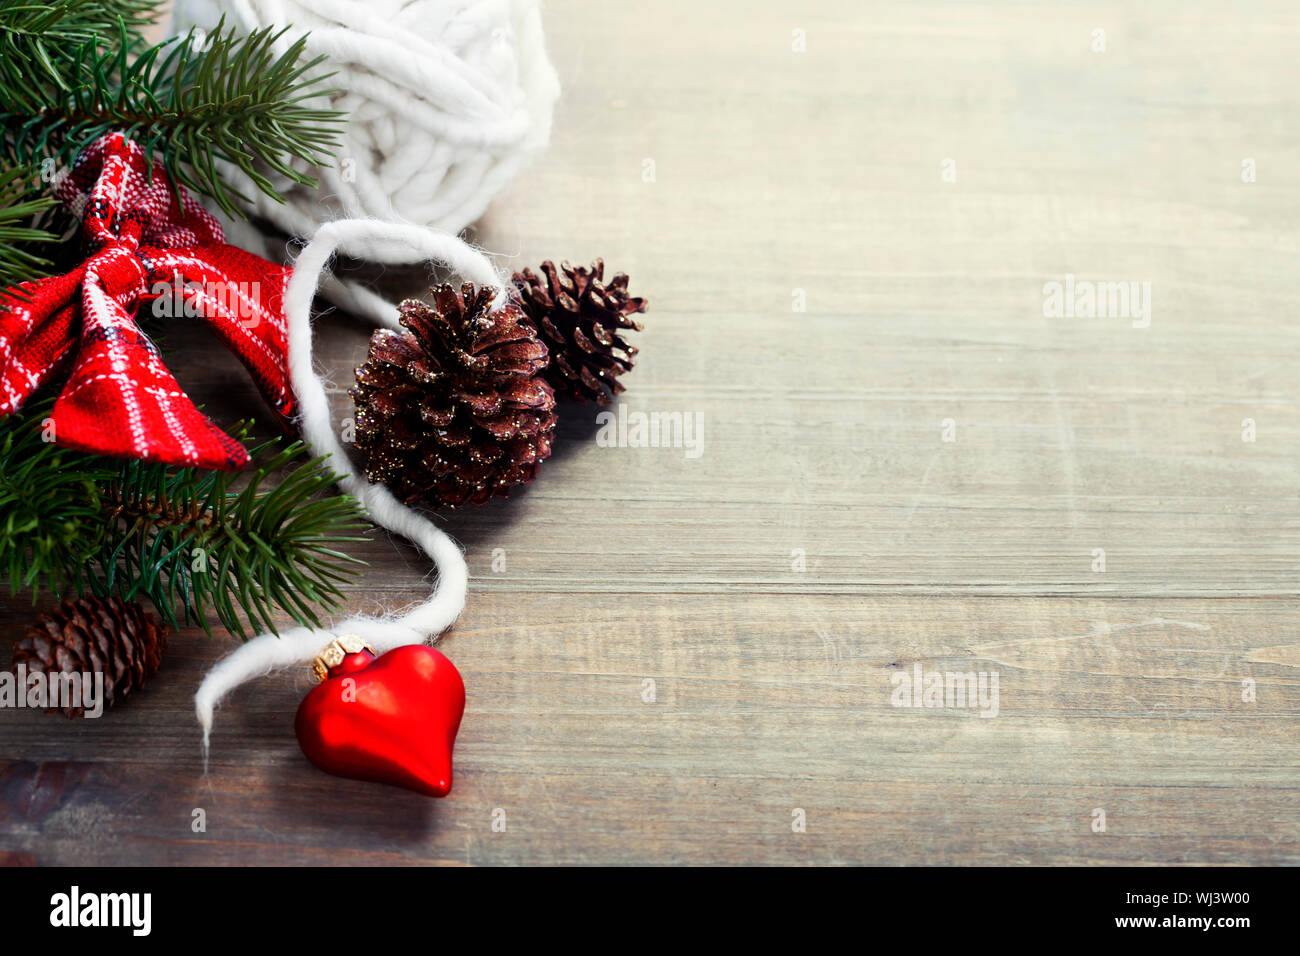 Christmas Border Design.Christmas Border Design On The Wooden Background Stock Photo